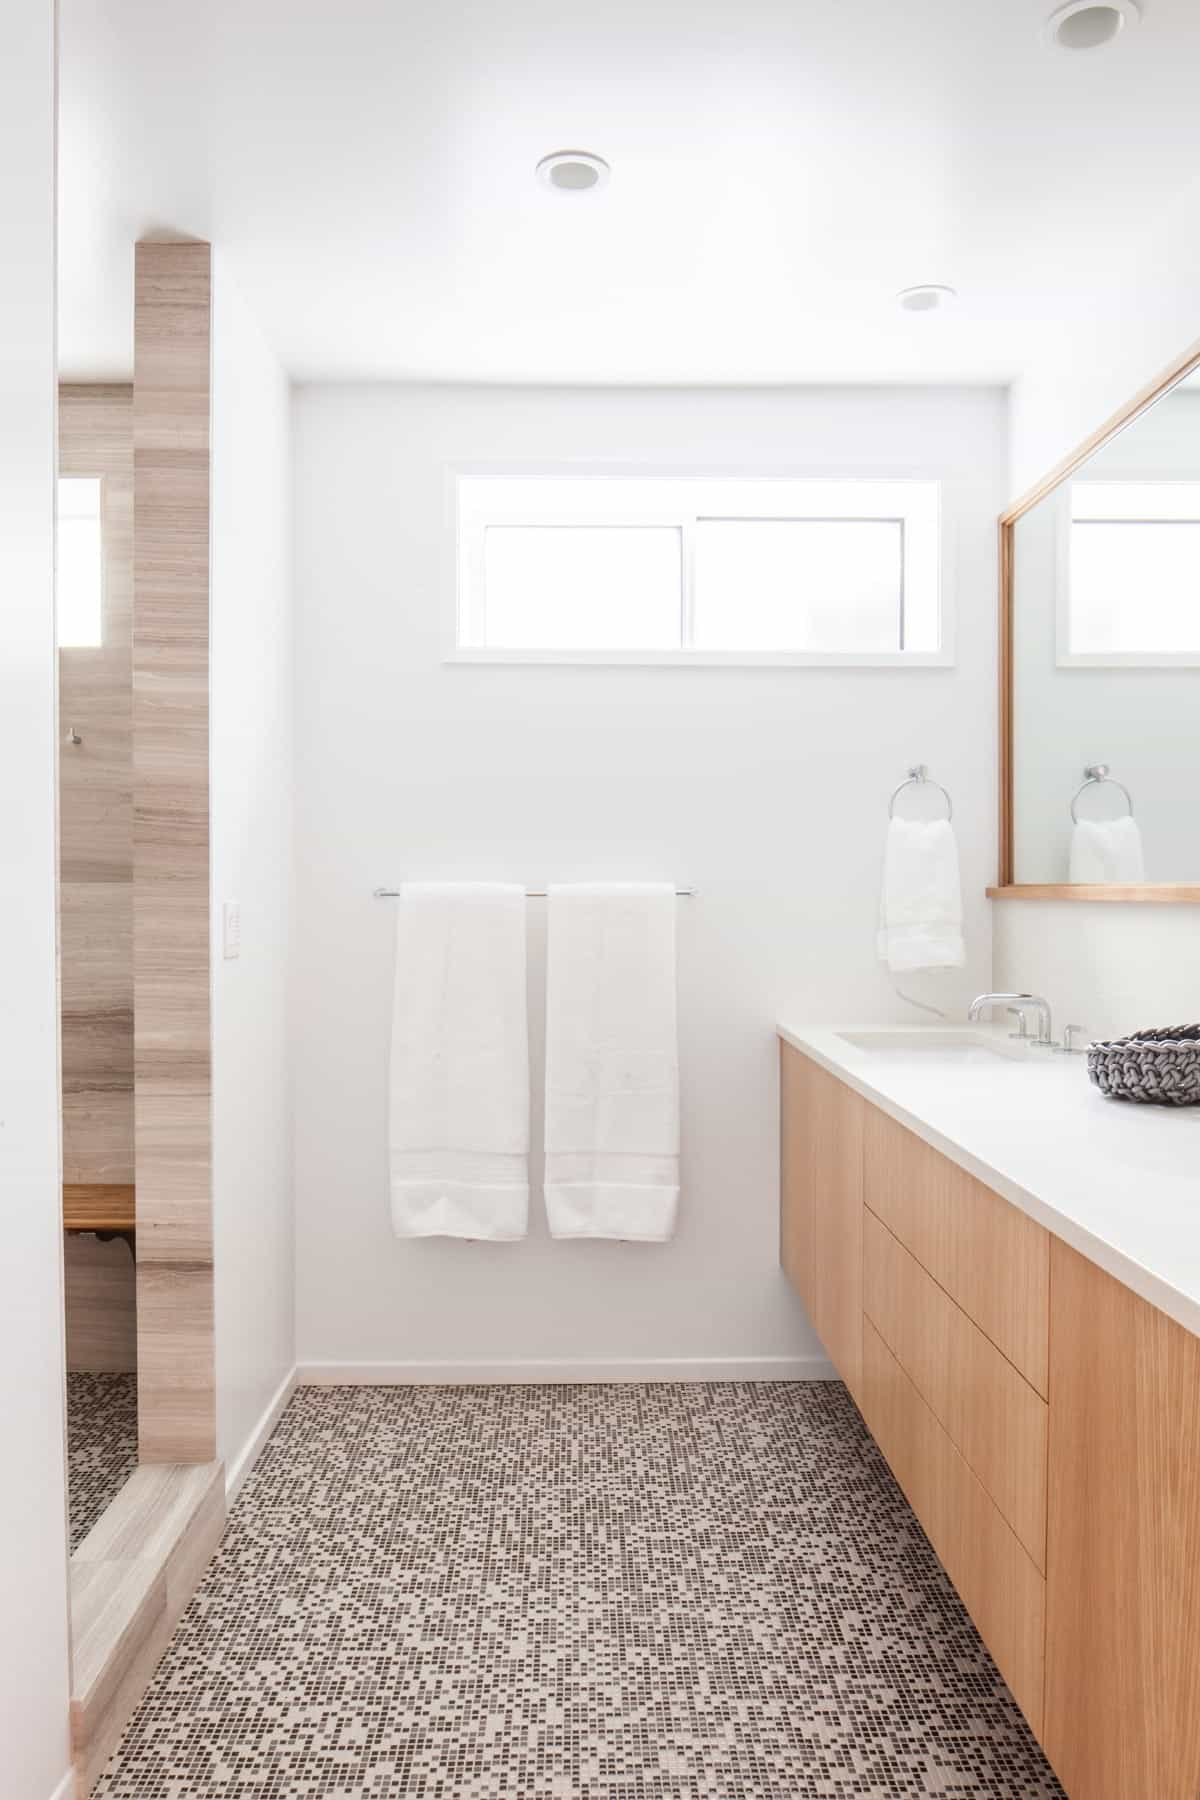 Modern White Bathroom Features Brown Mosaic Tile Floors (Image 12 of 20)